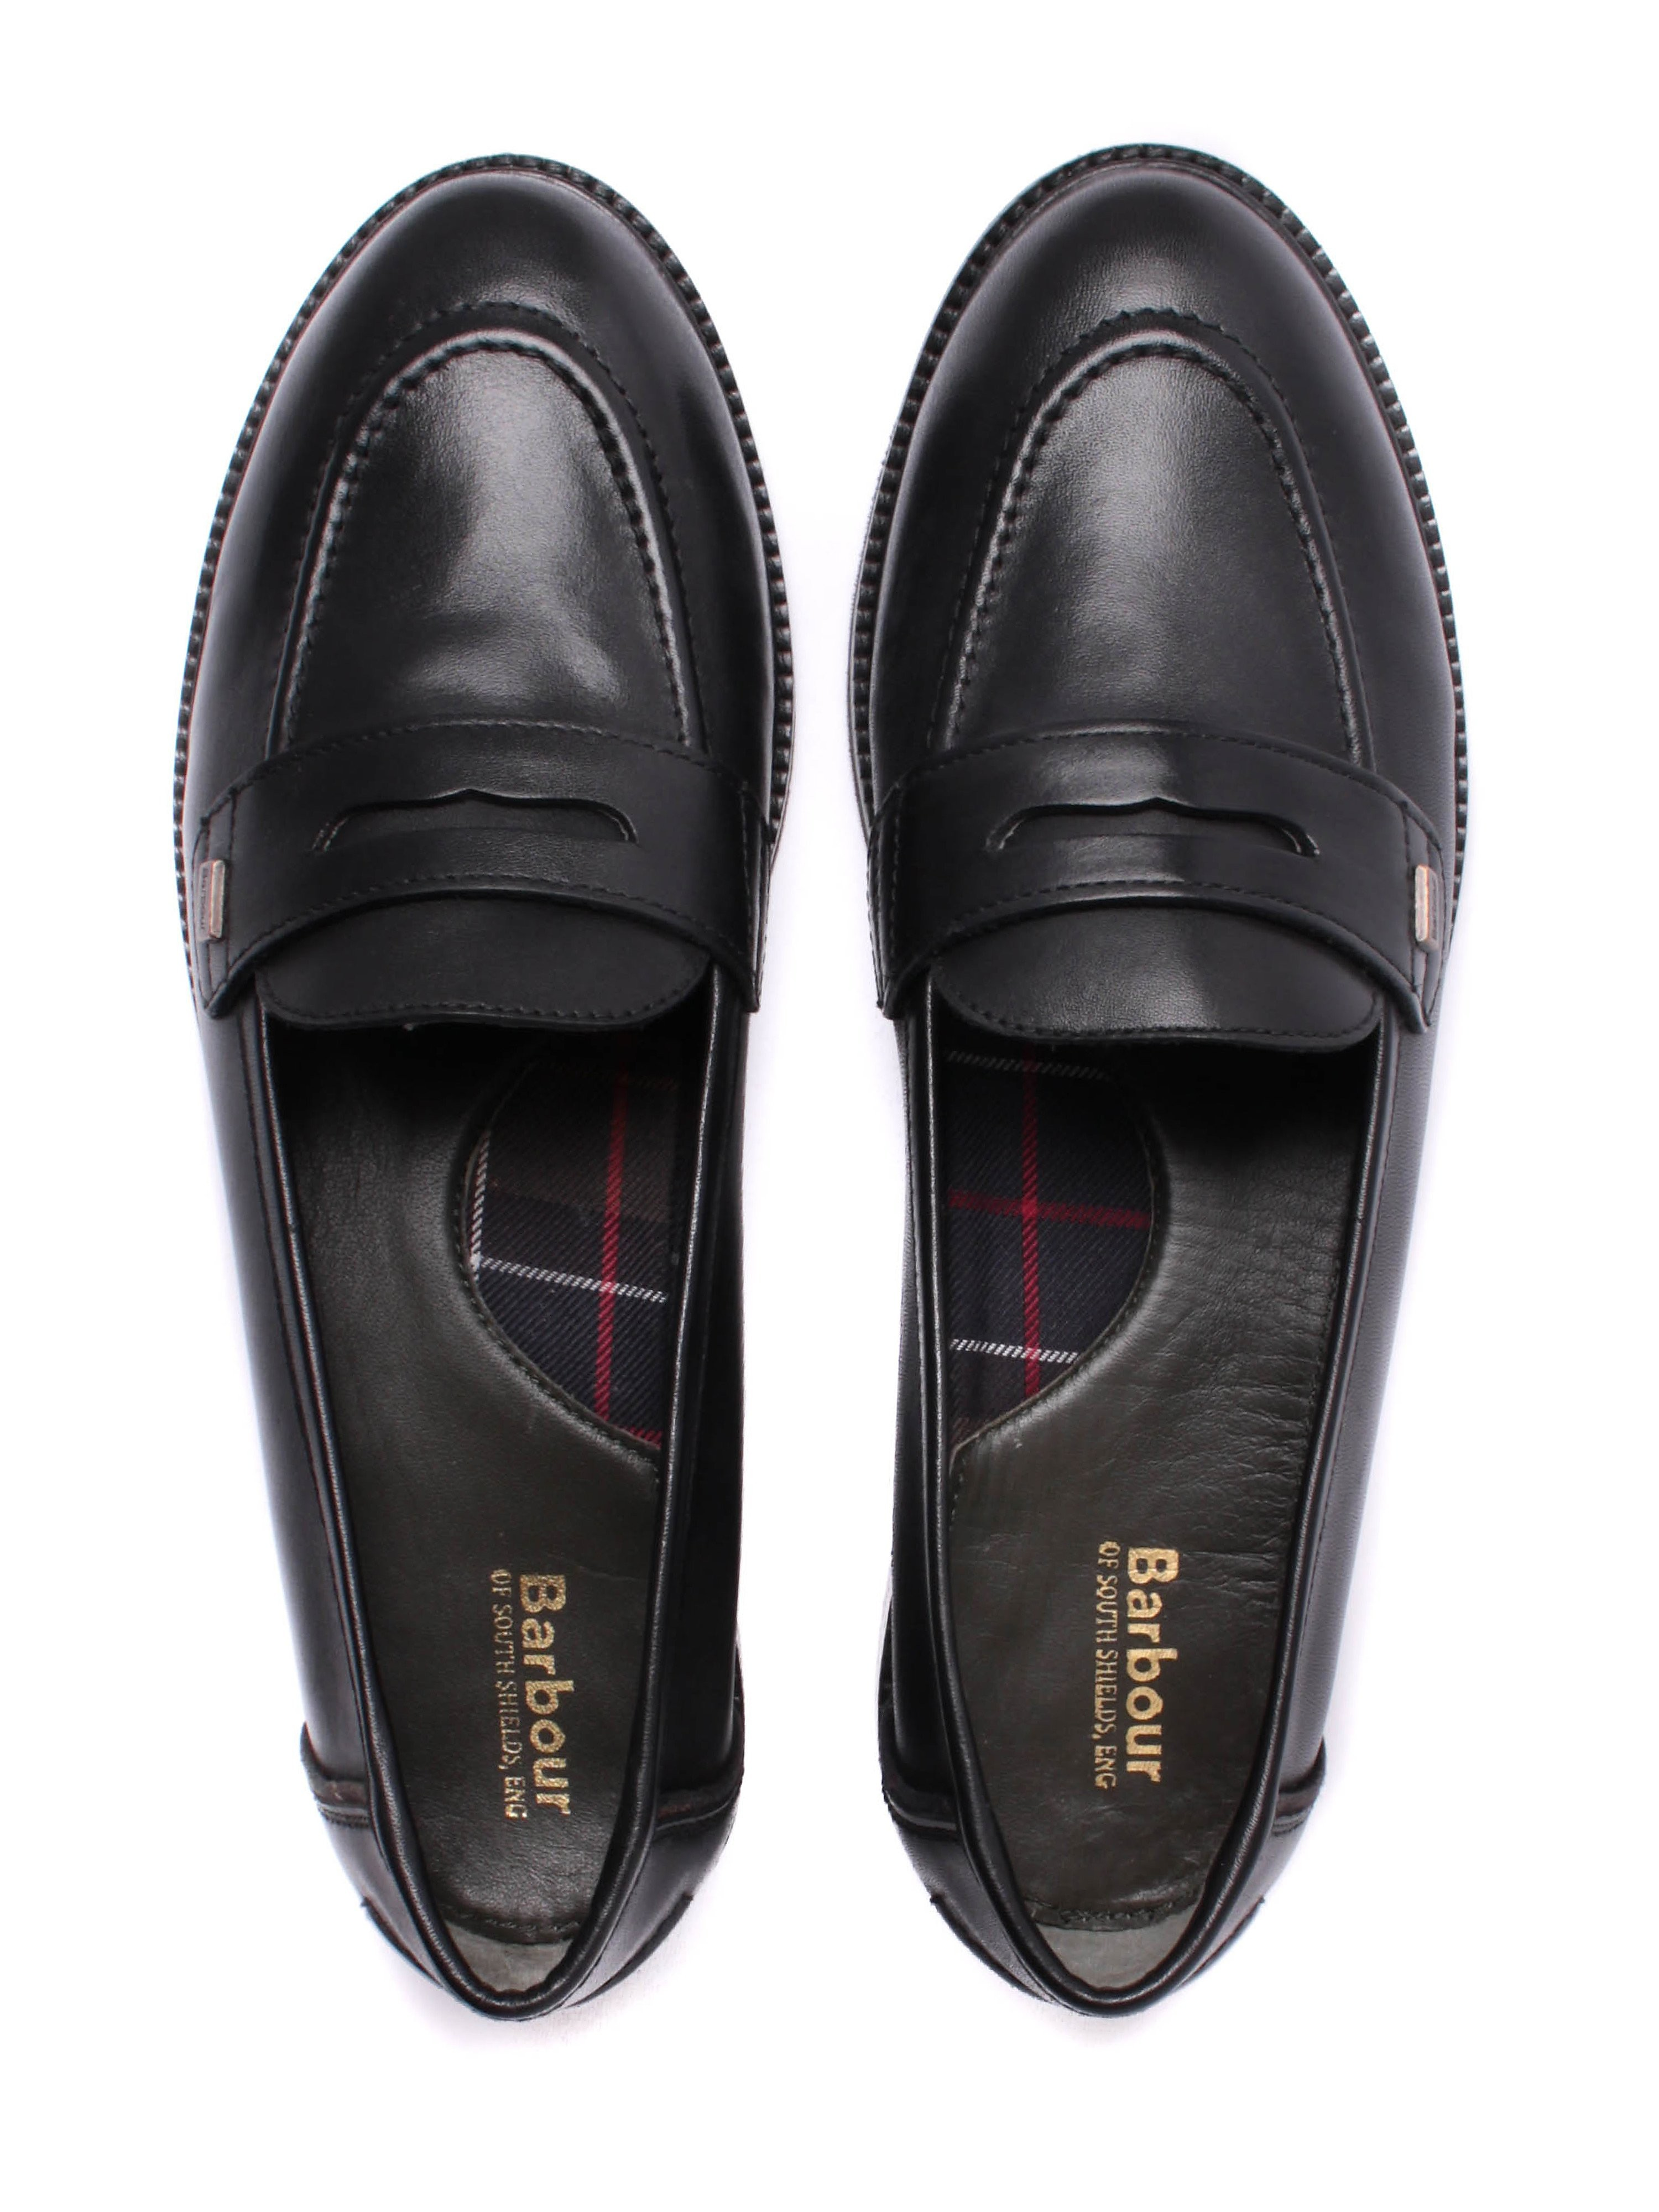 Barbour Women's Elaina Soft Leather Penny Loafers - Black